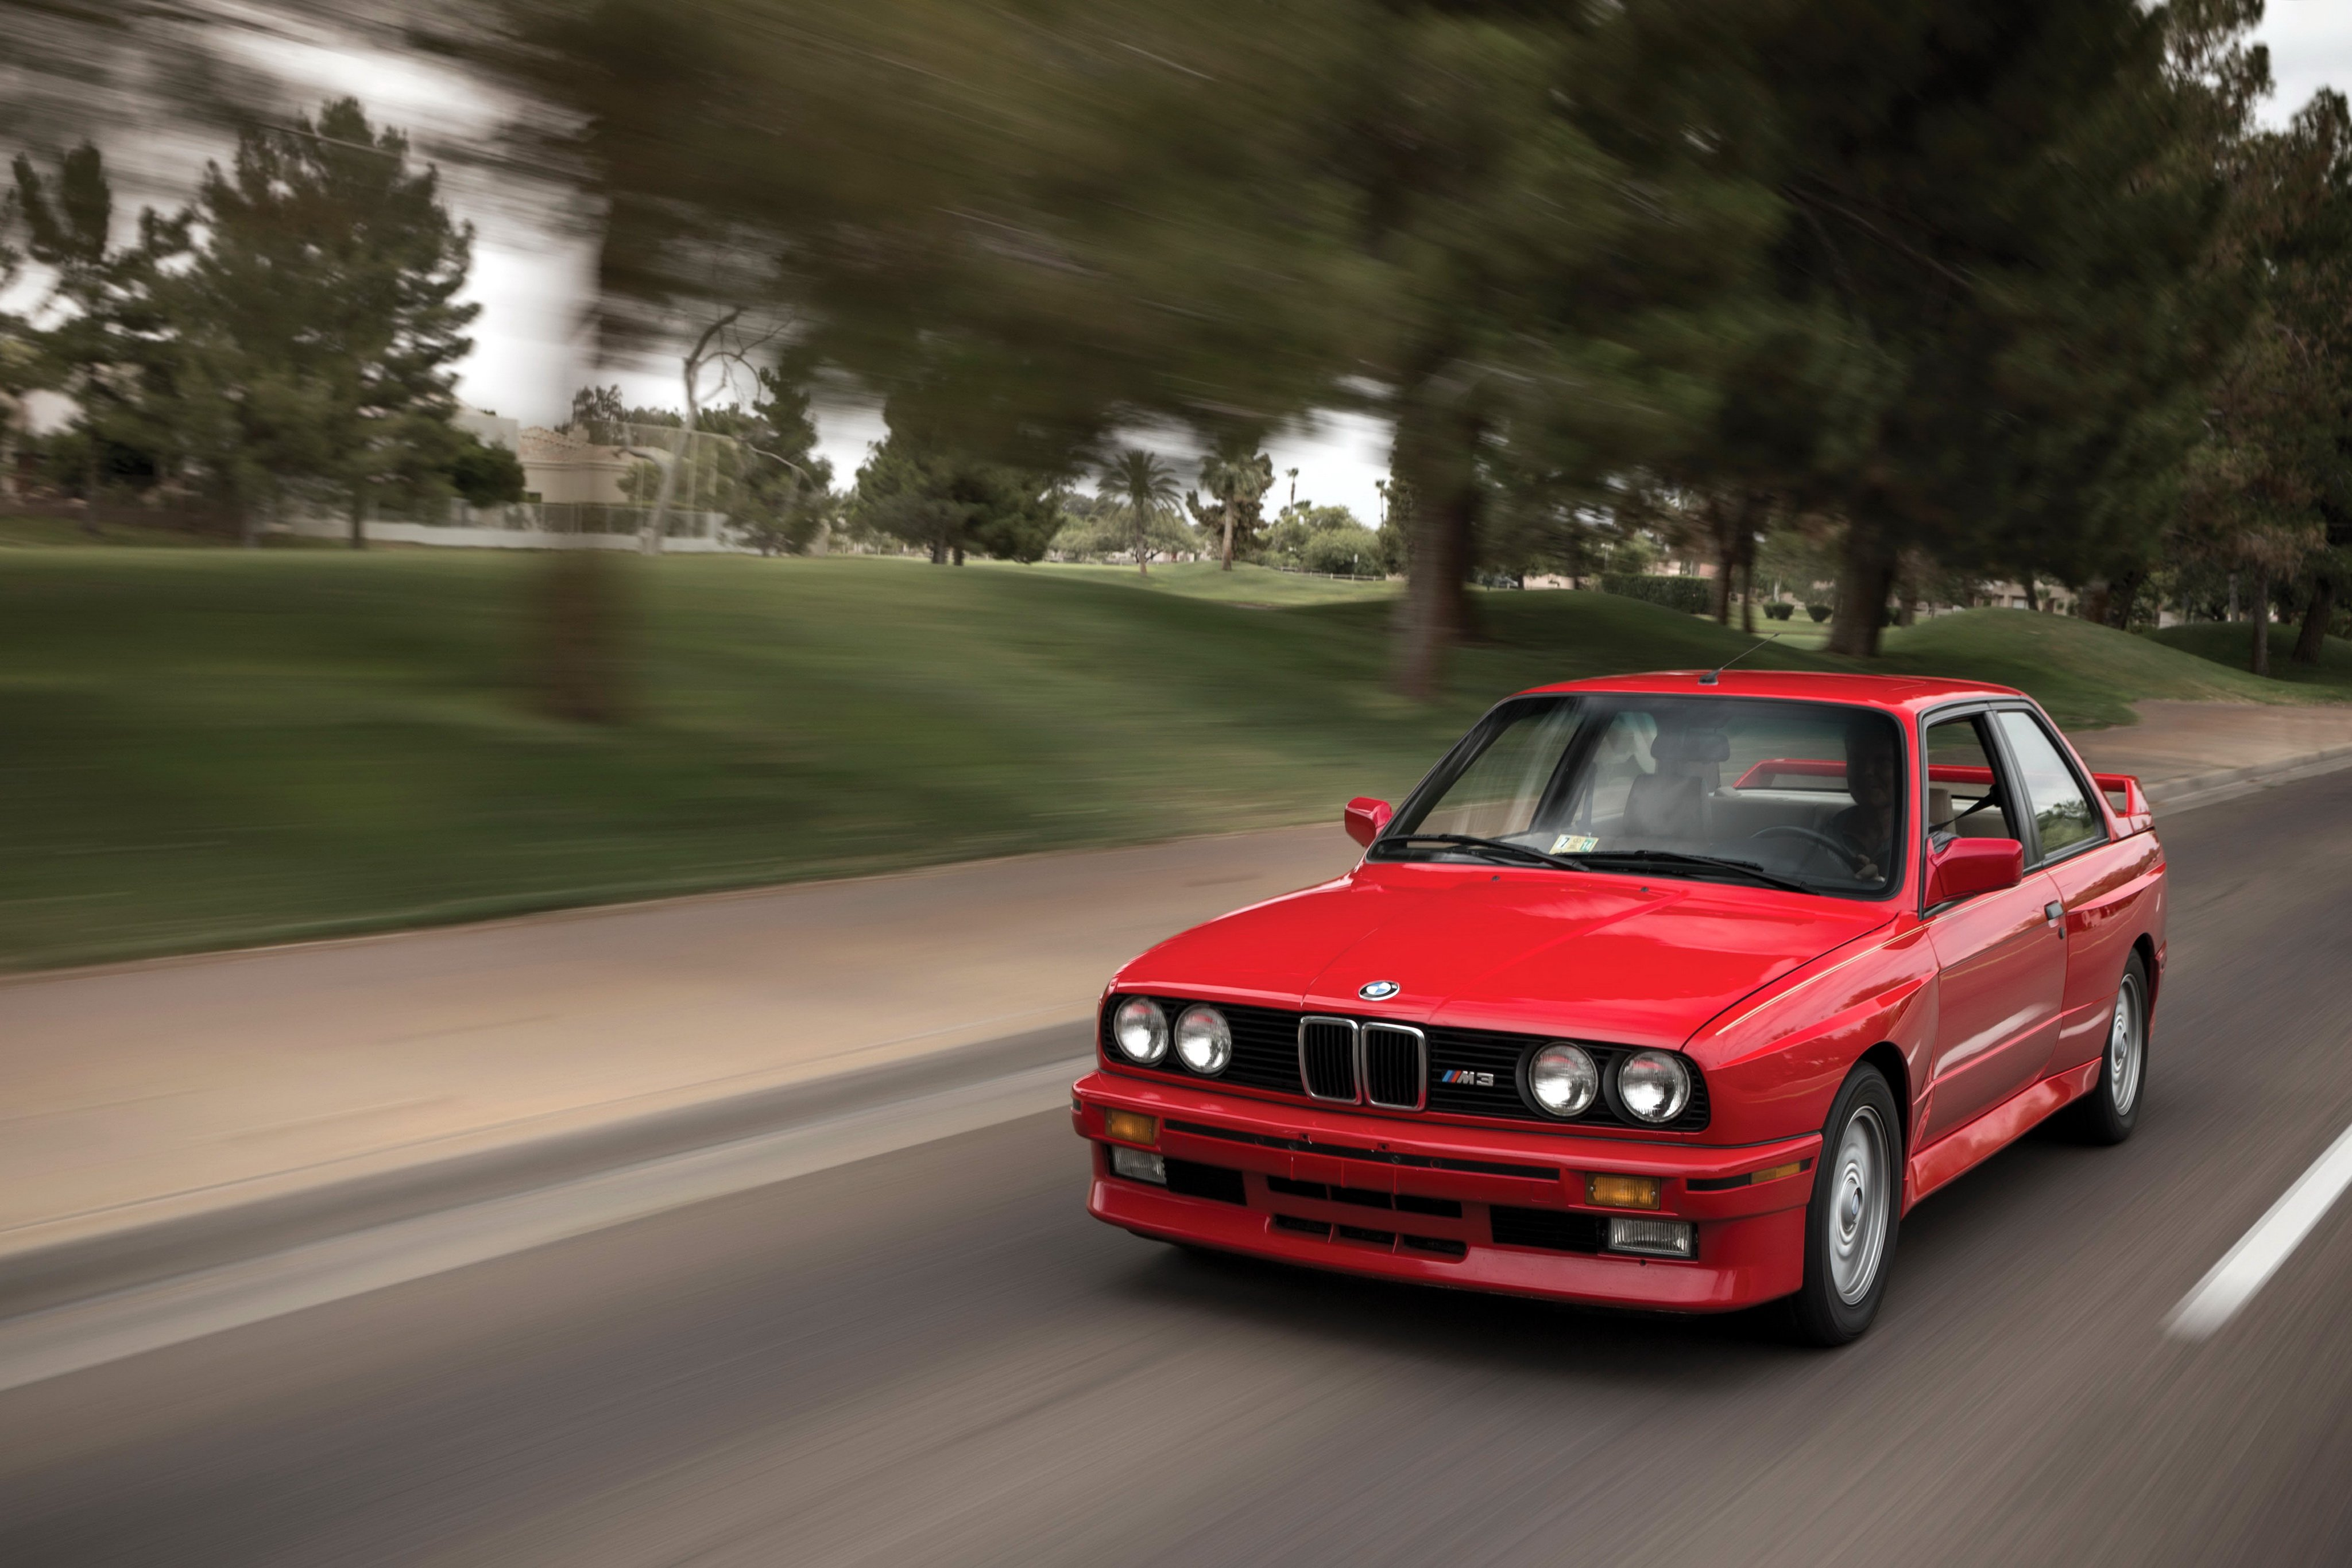 Bmw M3 Coupe Us Spec E30 Cars Coupe Red 1987 Wallpaper